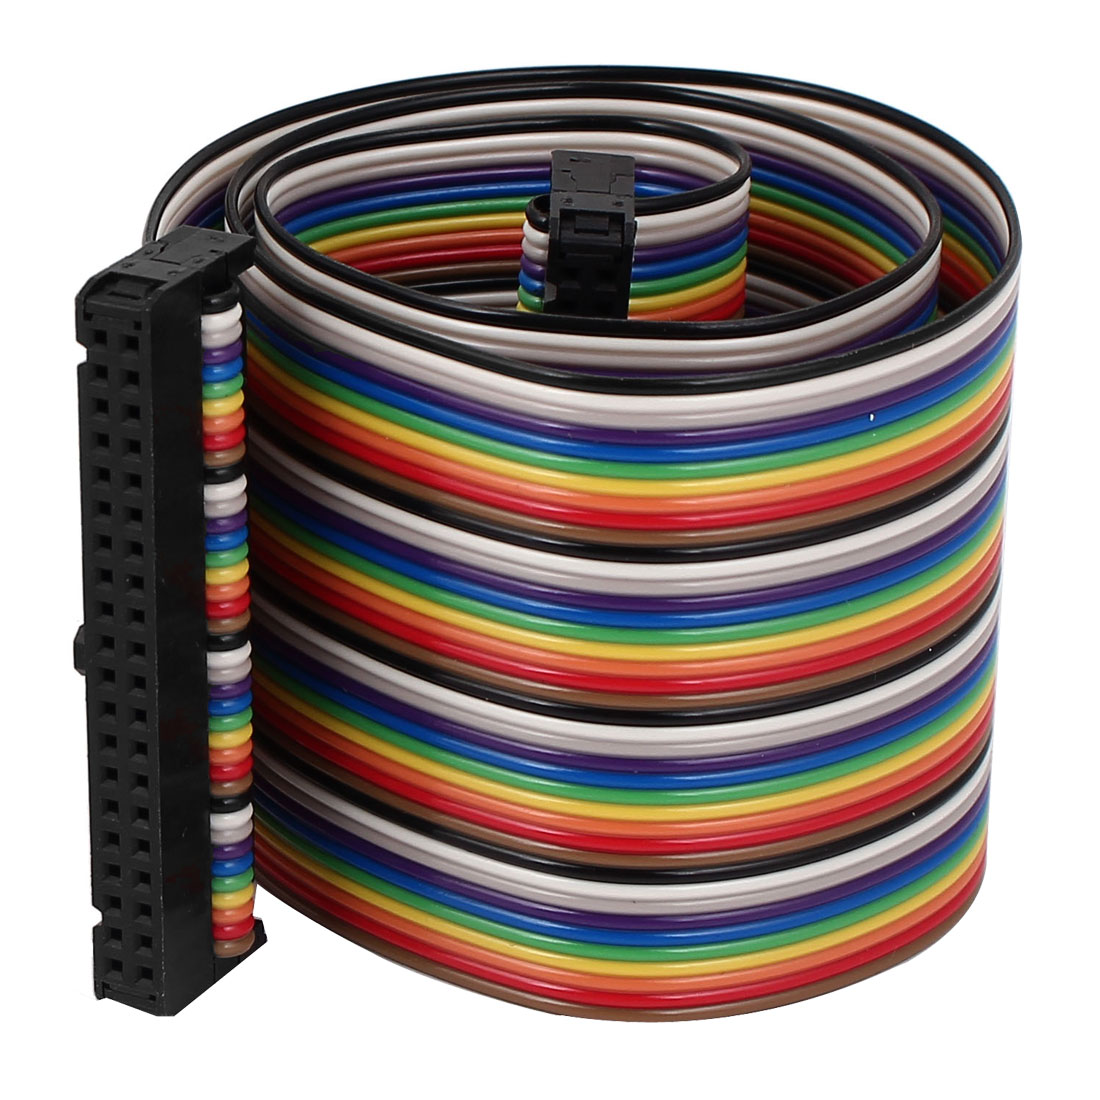 1.4ft 40 Pin 40 Way F/F Connector IDC Flat Rainbow Ribbon Cable